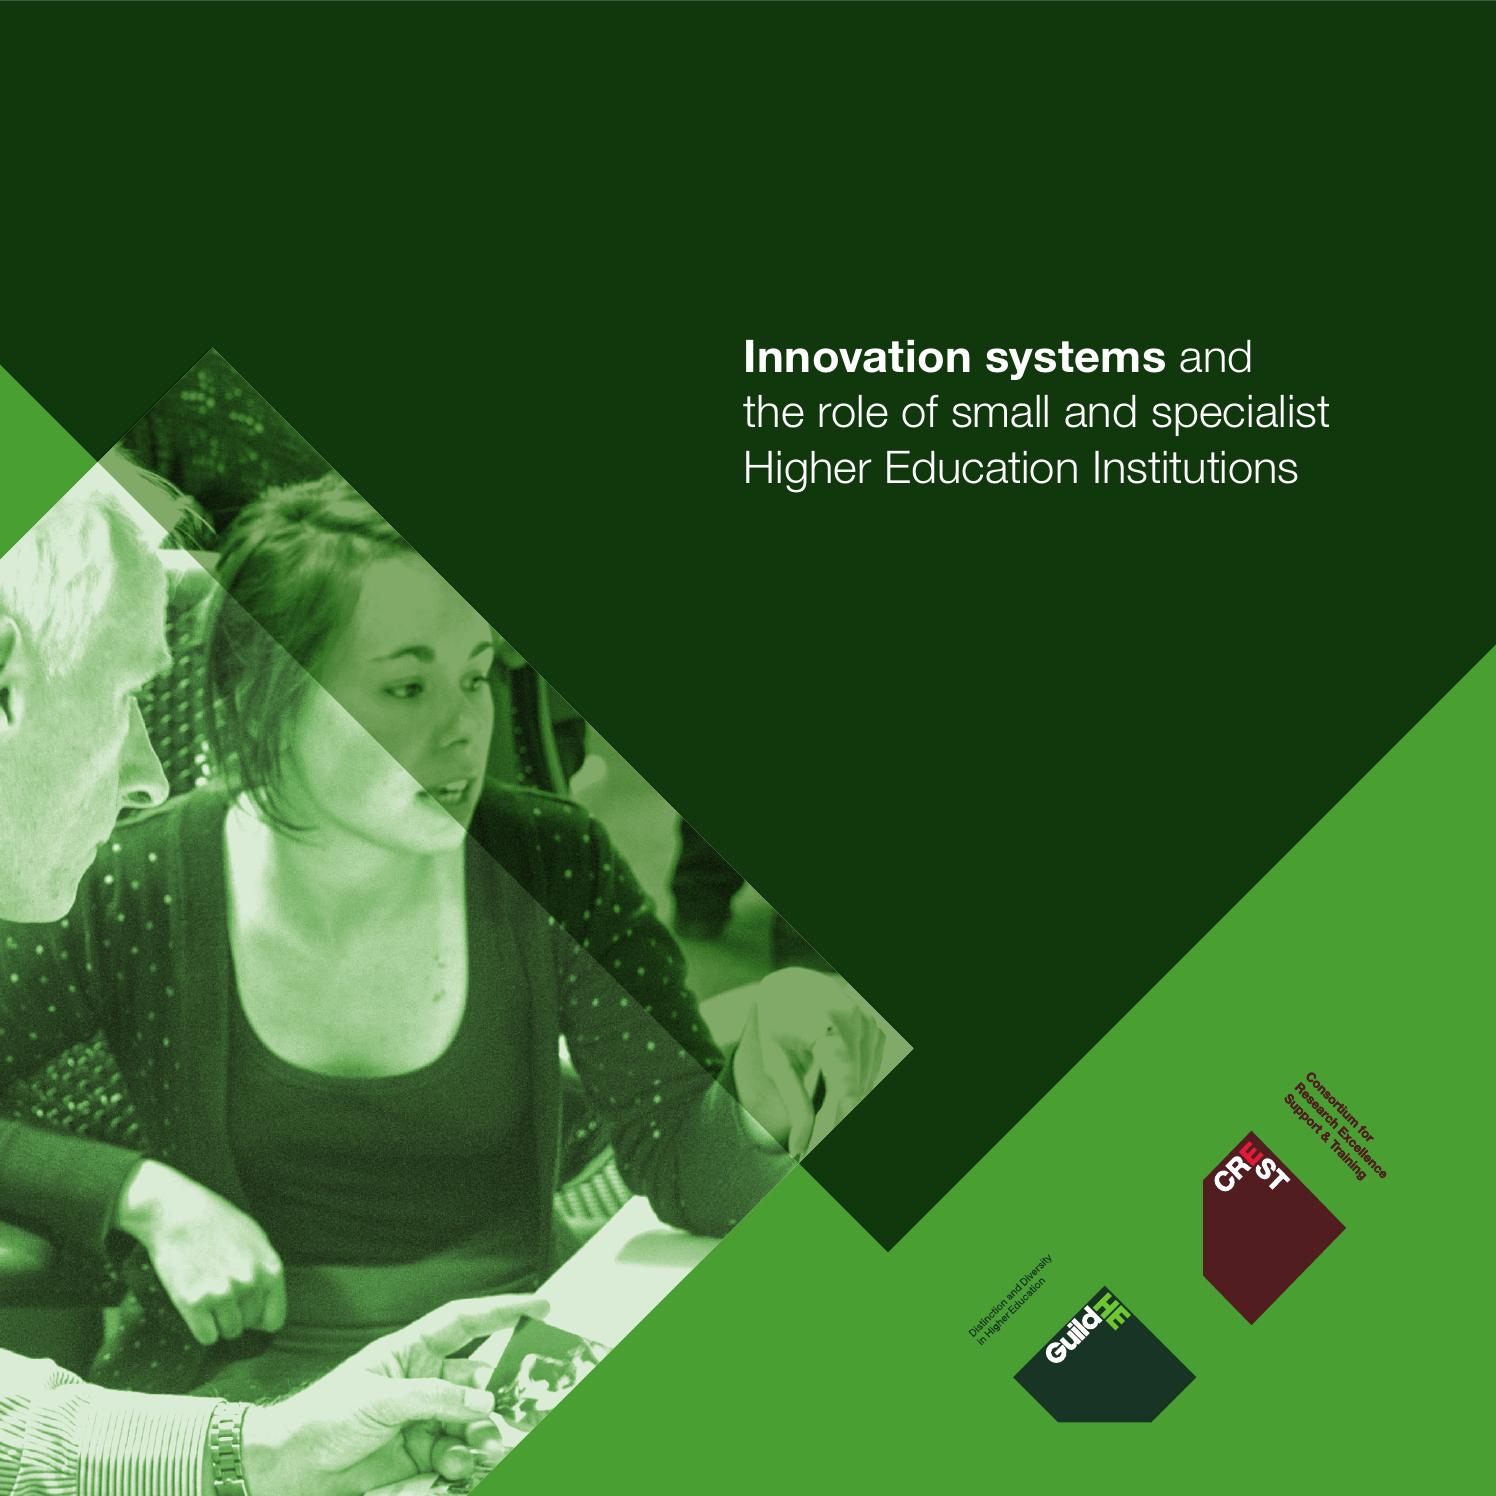 Innovation Systems And The Role Of Small Specialist Heis By Open Circuit Arm Detector Ocad Guildhe Crest Issuu